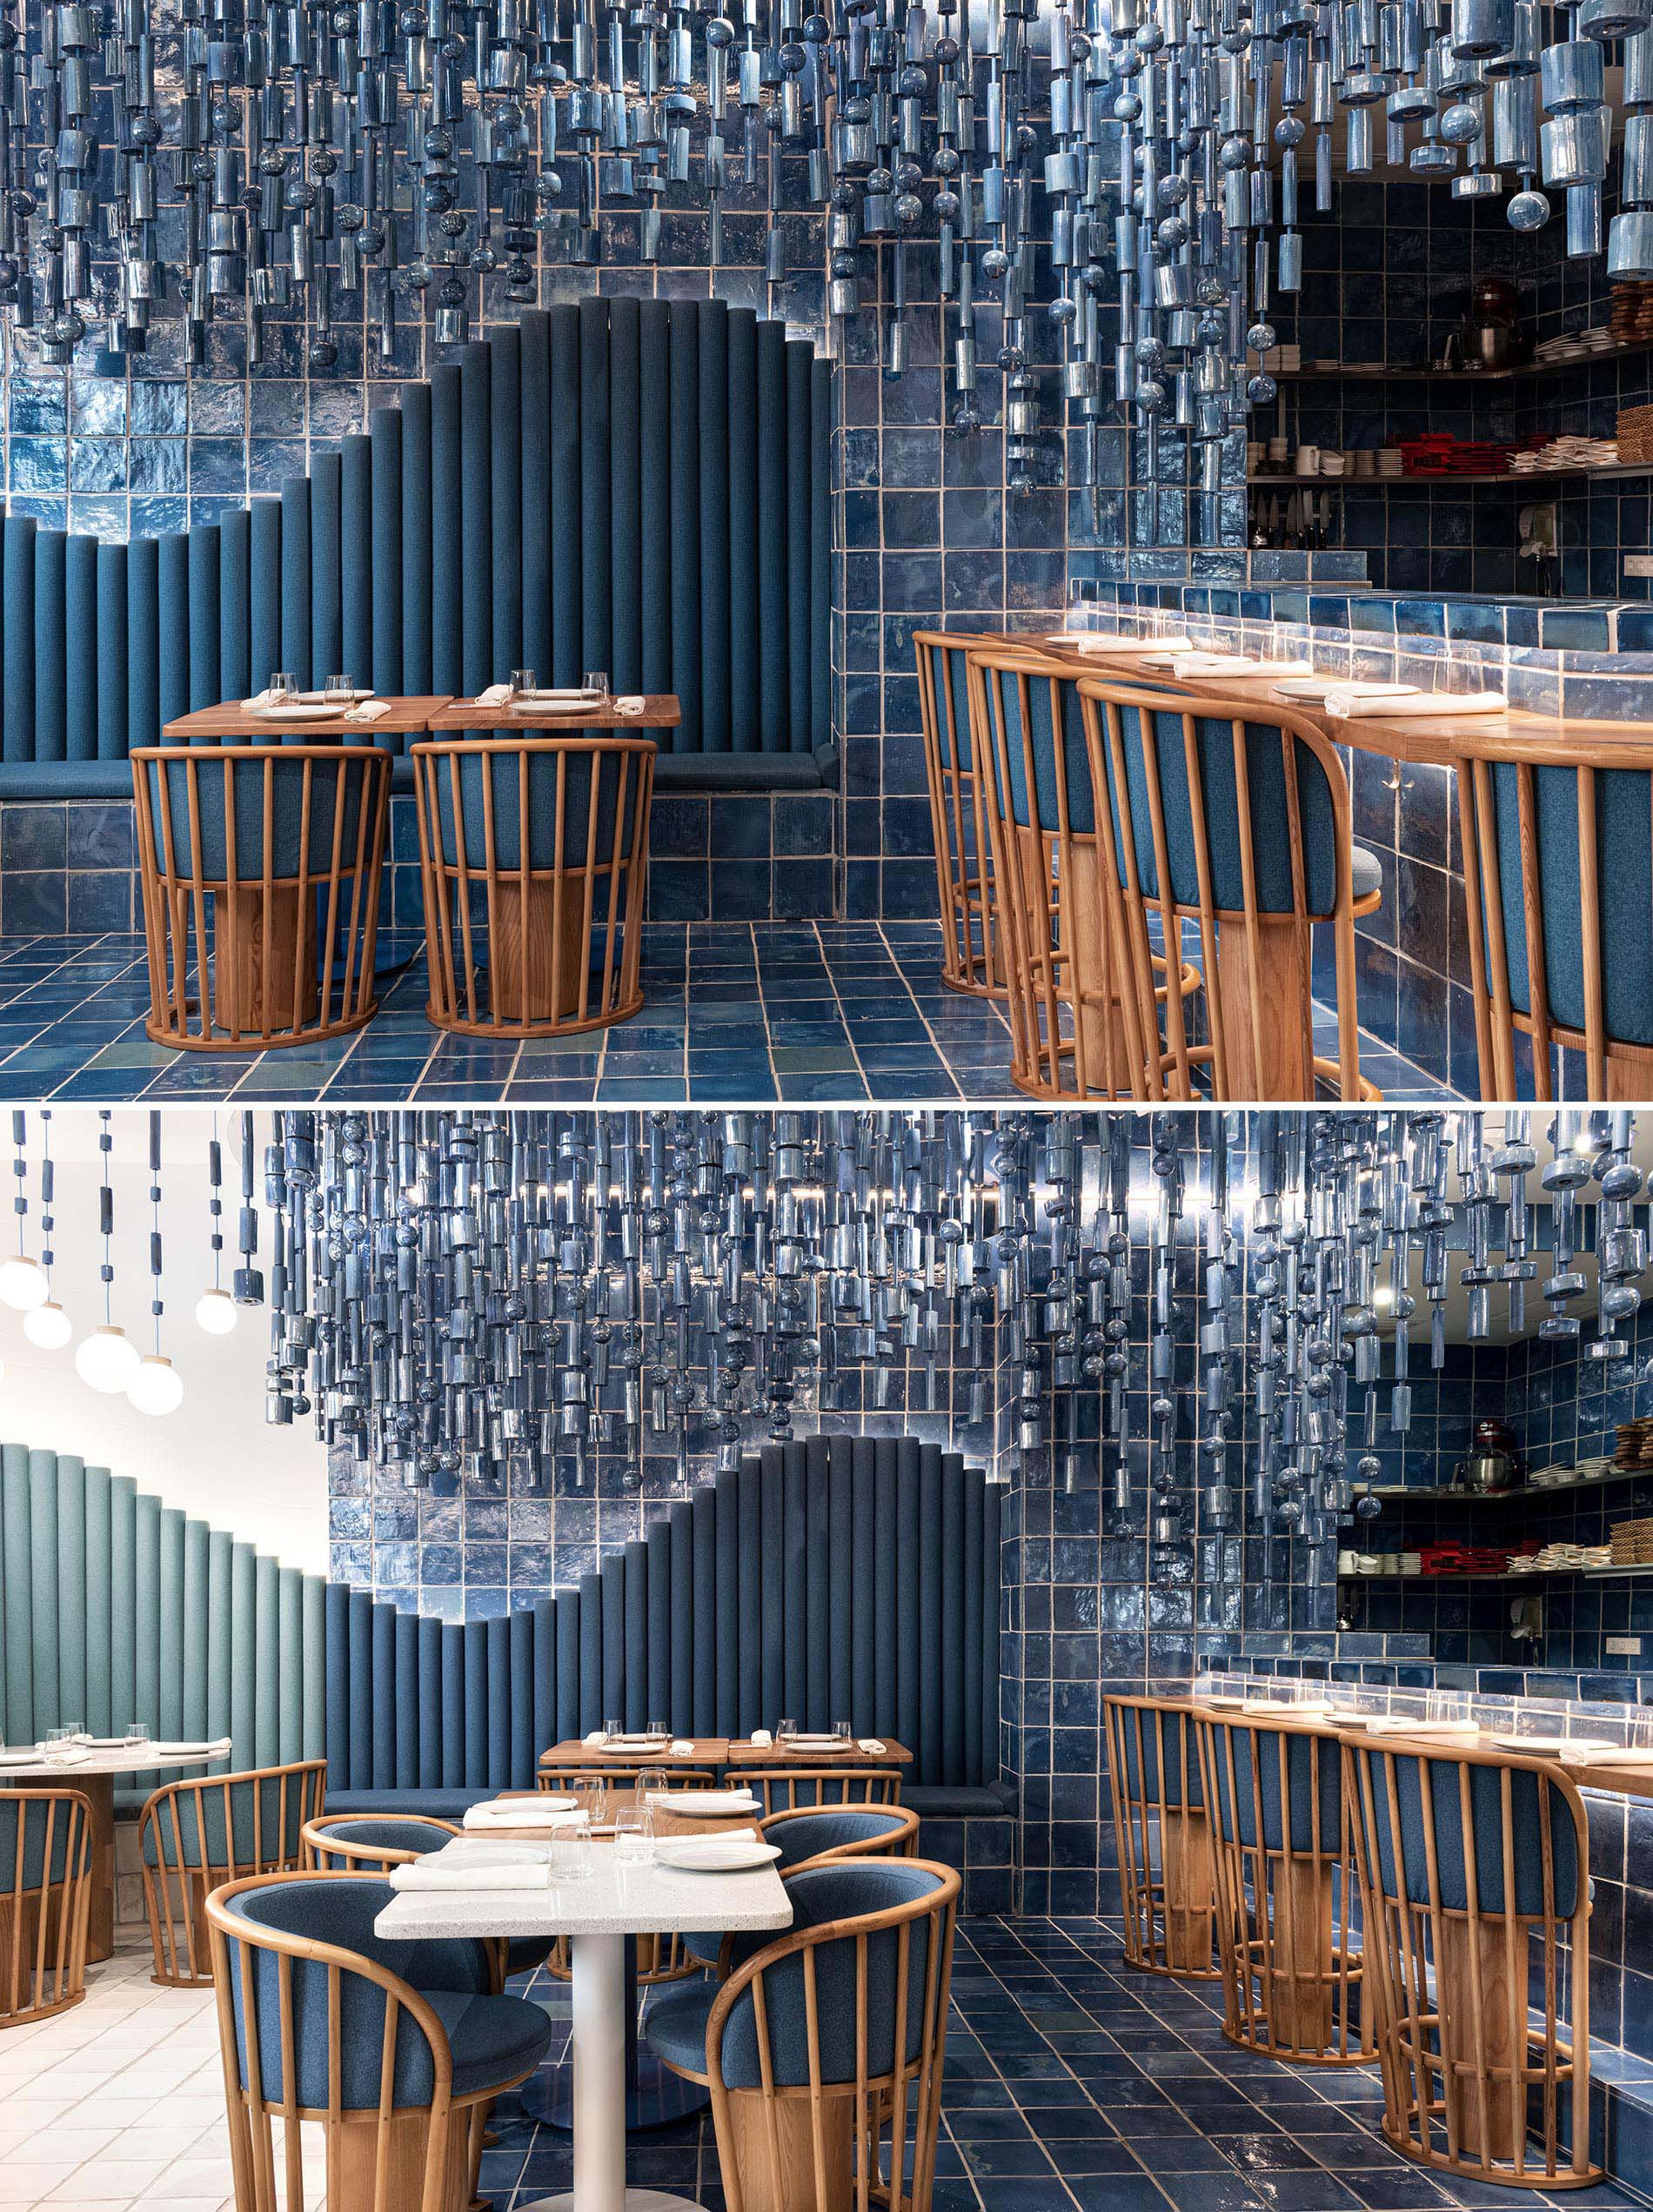 A modern restaurant with blue tiles was inspired by the sea and waves.